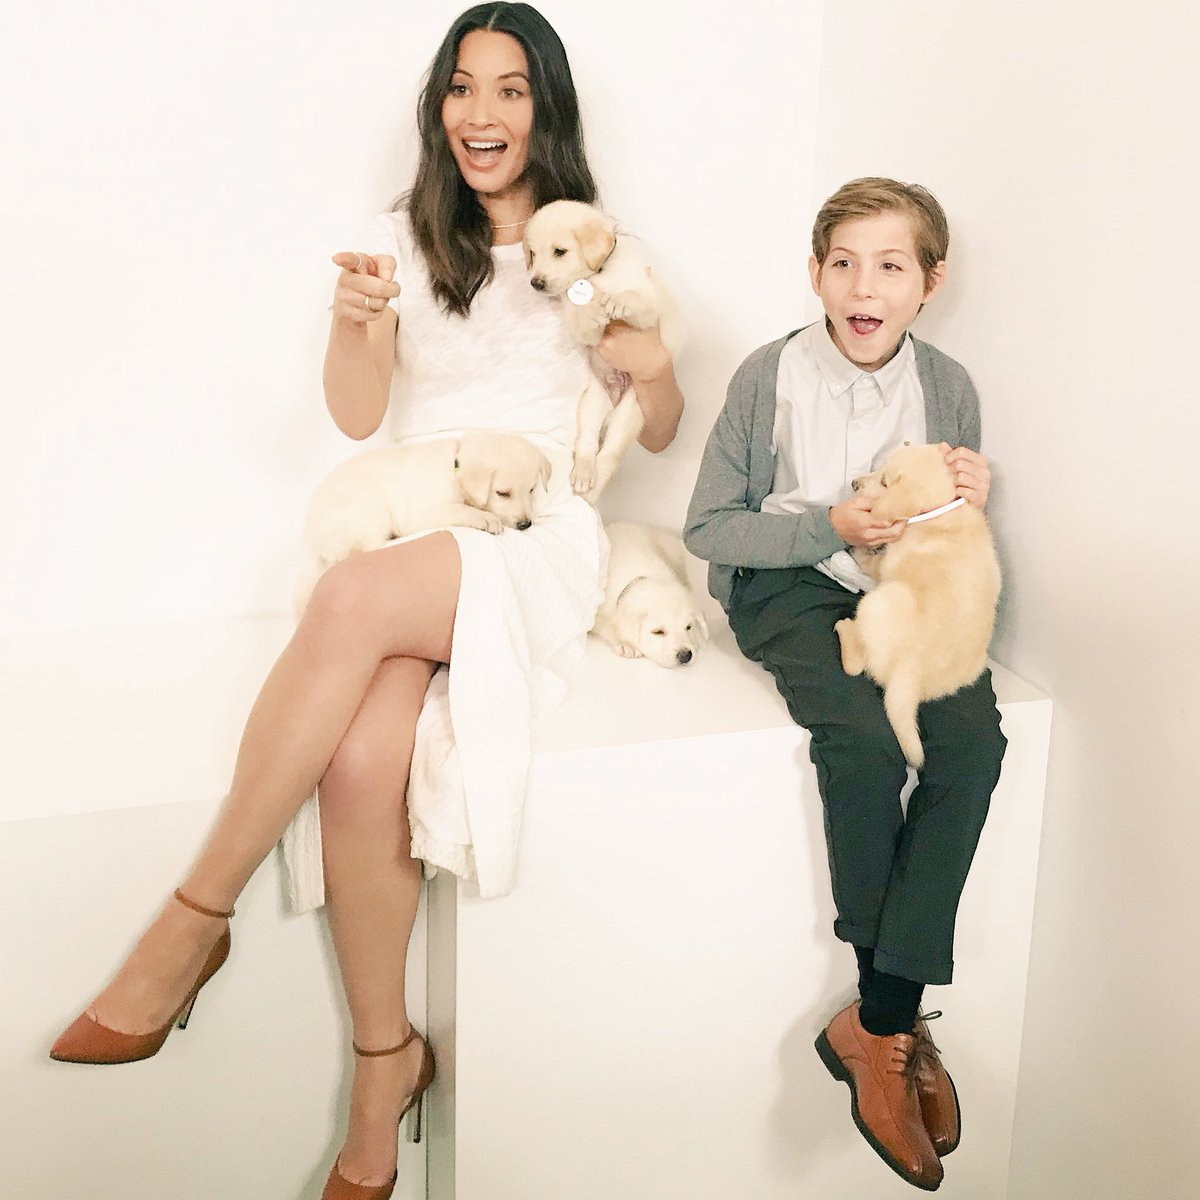 Thank God for @JacobTremblay and puppies ❤️???????????????????? https://t.co/wFRPJcWxhs